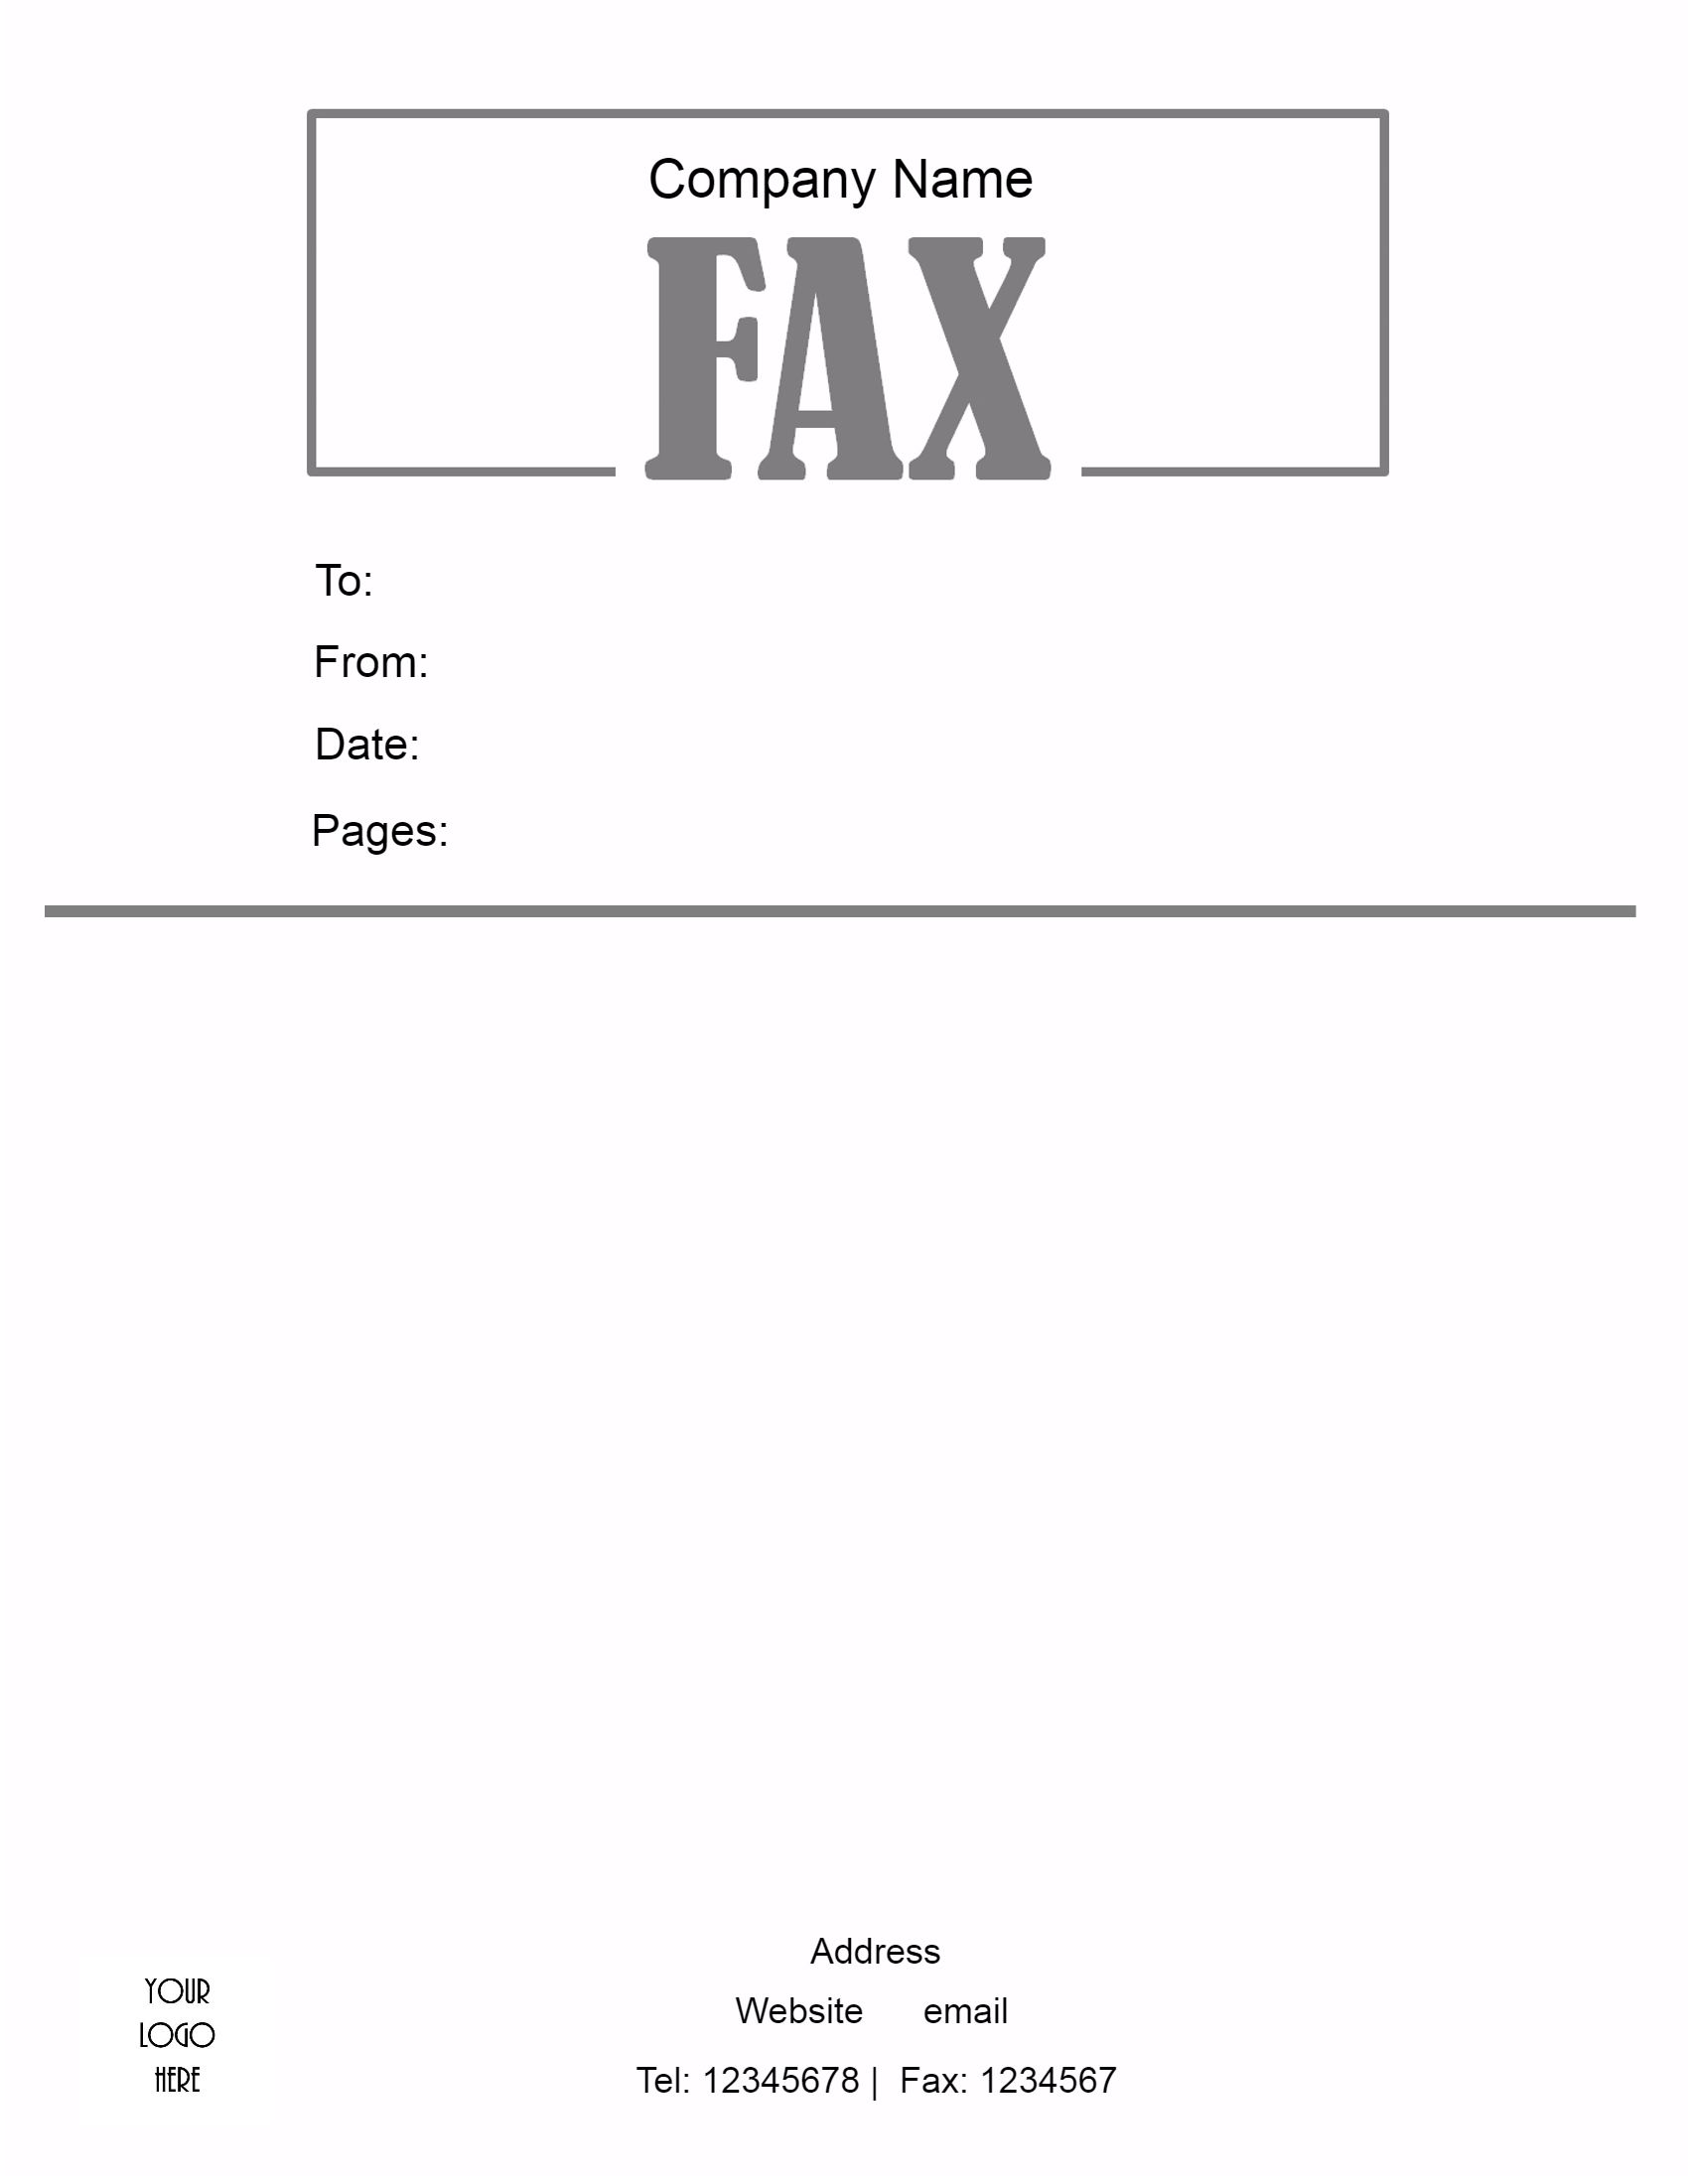 doc 432561 fax template cover sheet word fax cover fax cover letter template fax template cover sheet word